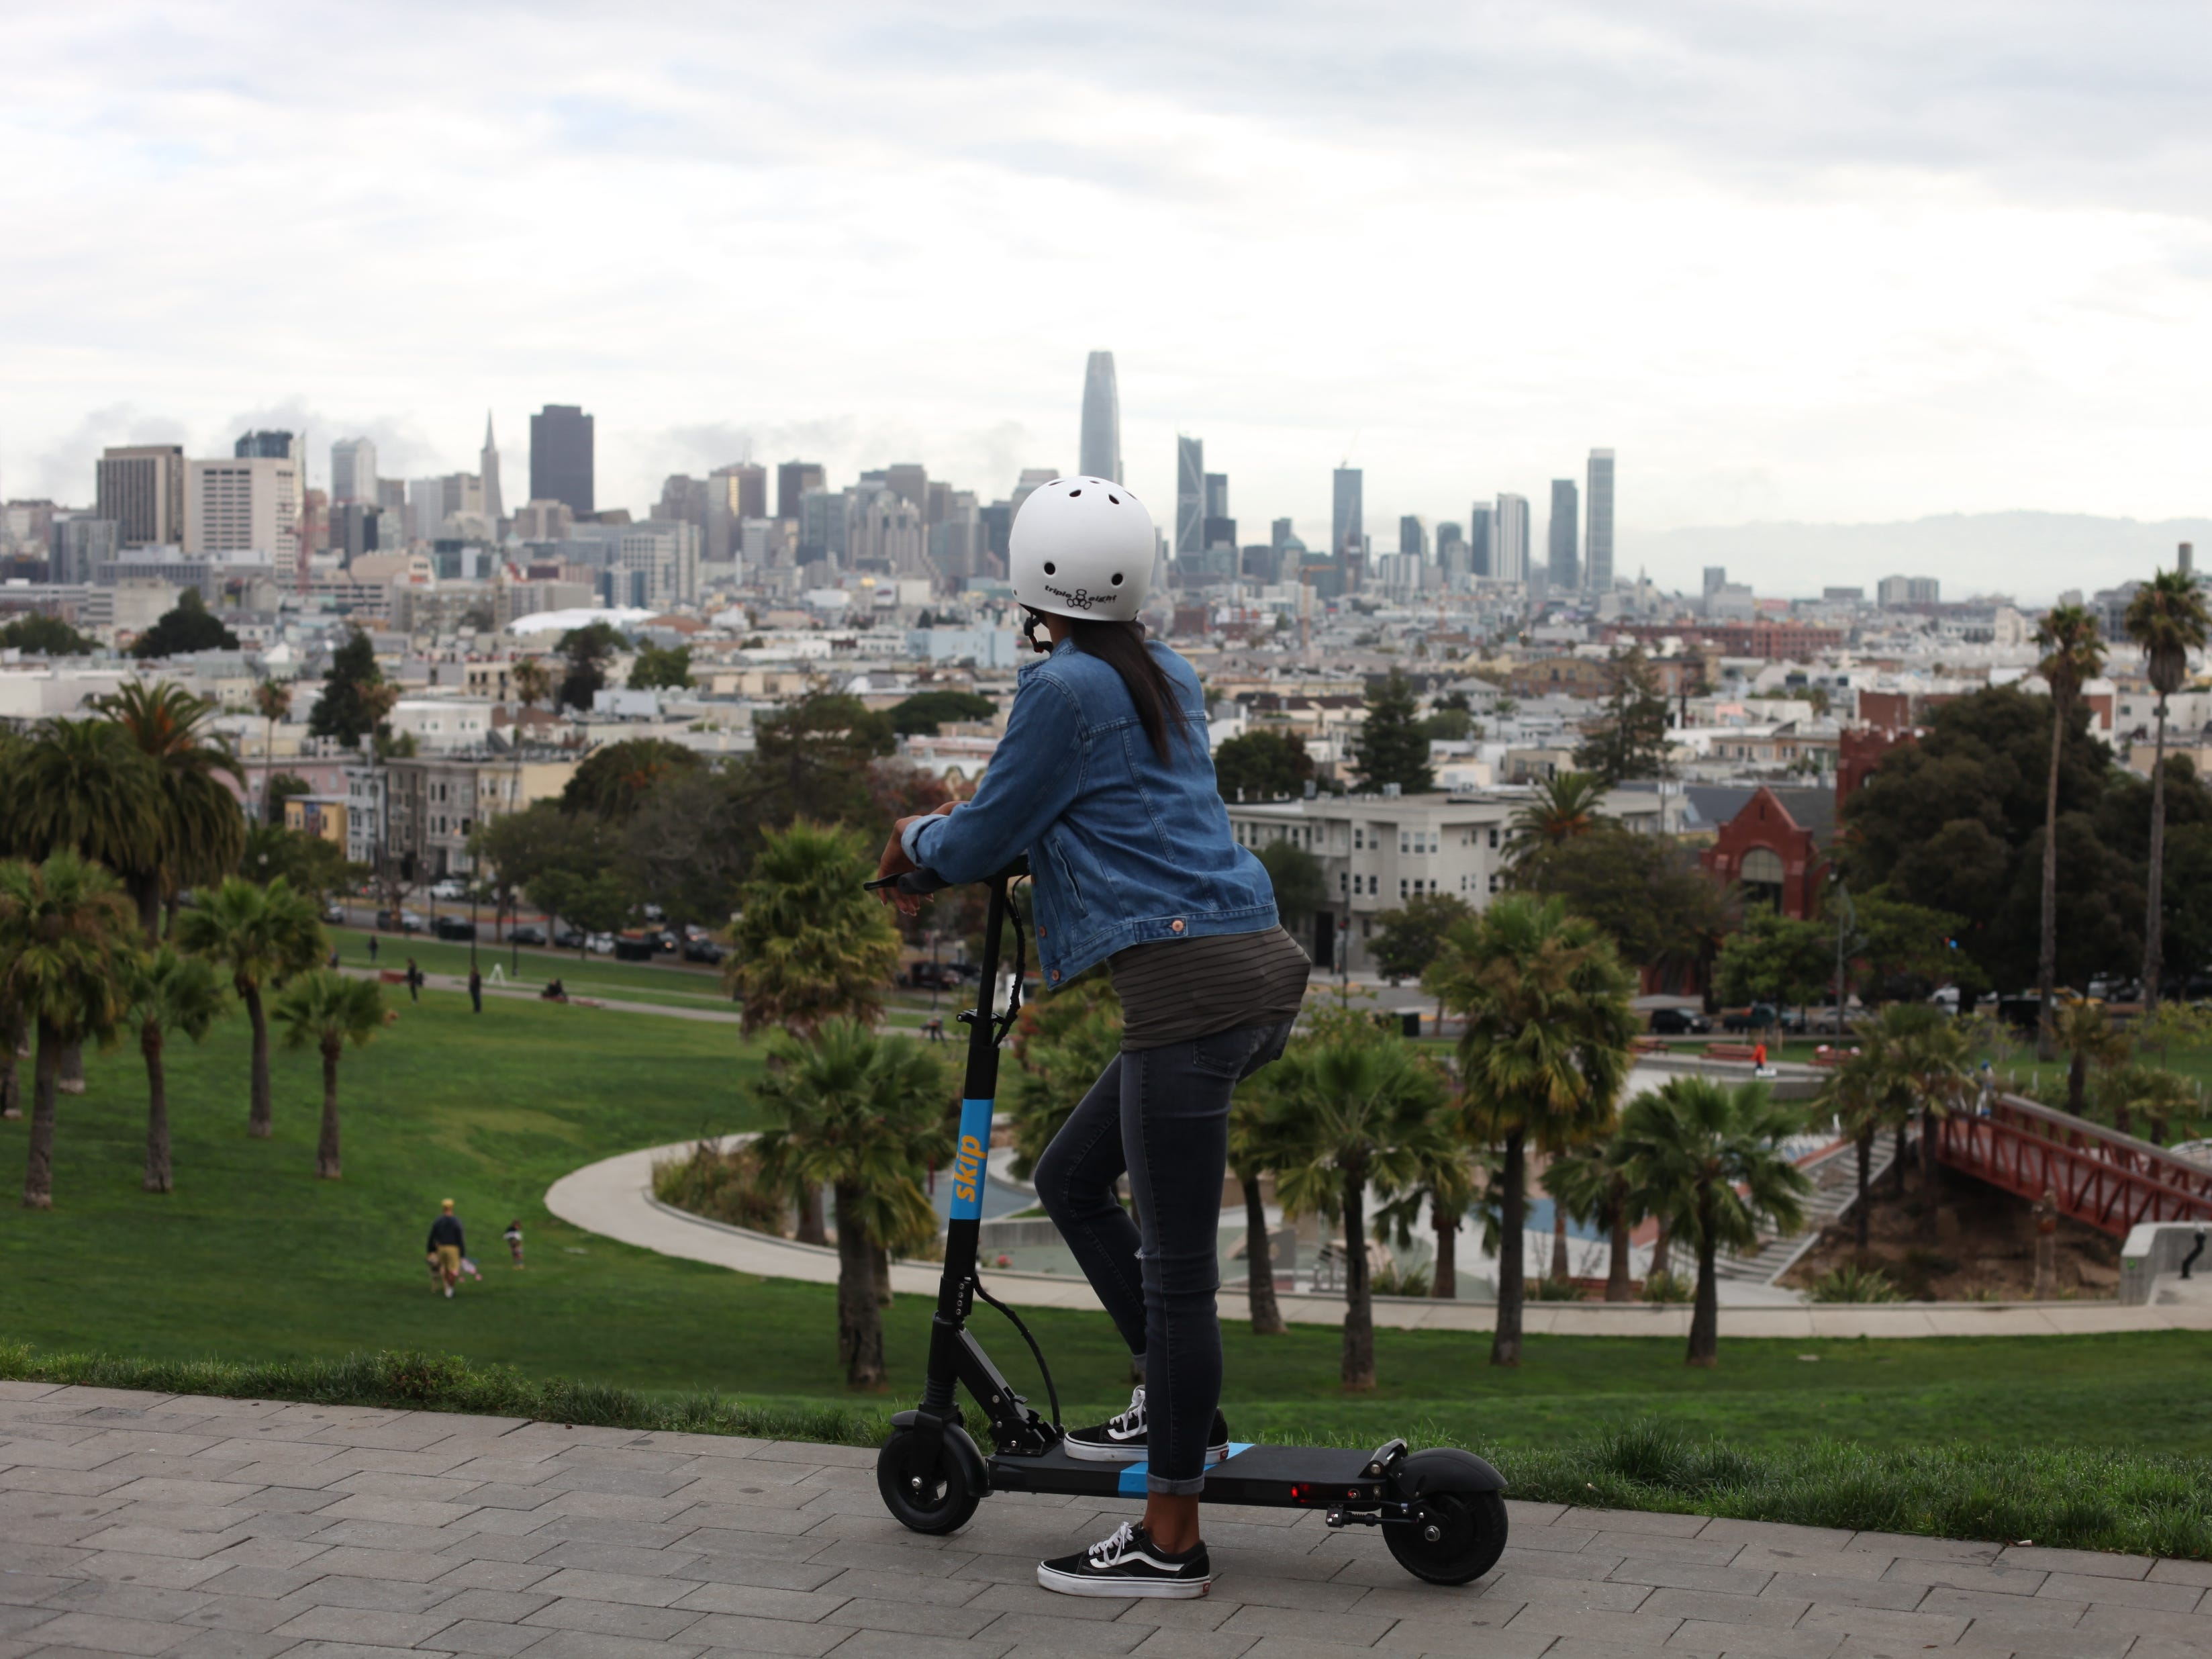 While cable cars remain San Francisco's transportation icon, scooters have proven popular with residents and visitors.